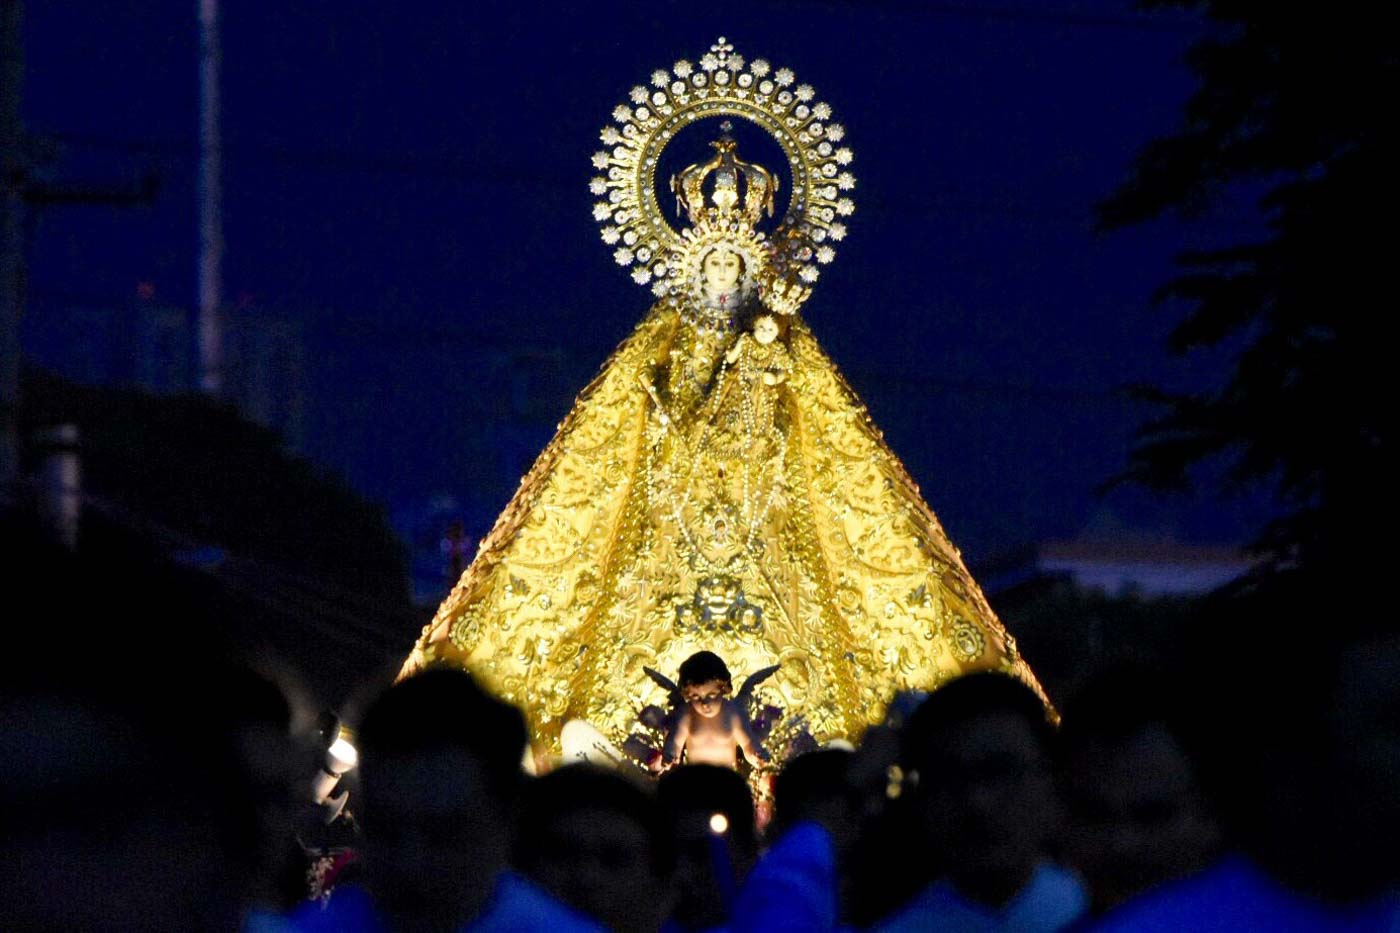 'HAIL MARY.' October, when the La Naval procession is held, is also the Catholic month of the holy rosary. Photo by Angie de Silva/Rappler